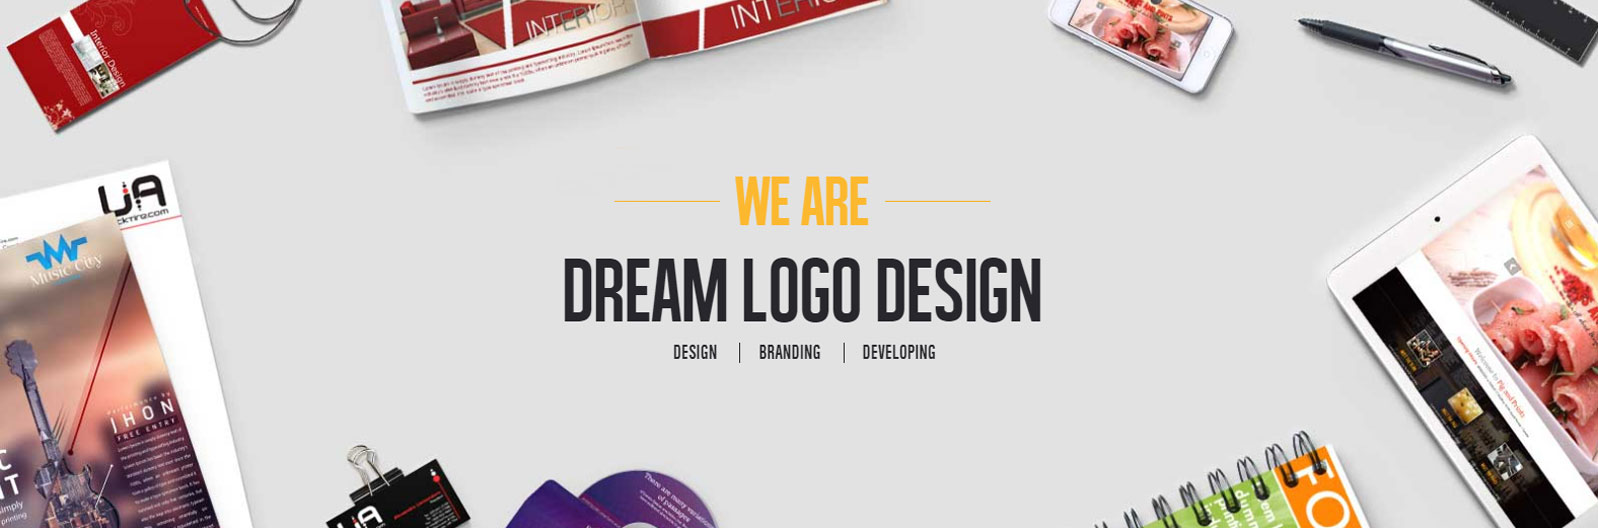 Cleaning Logo Design Portfolio 1